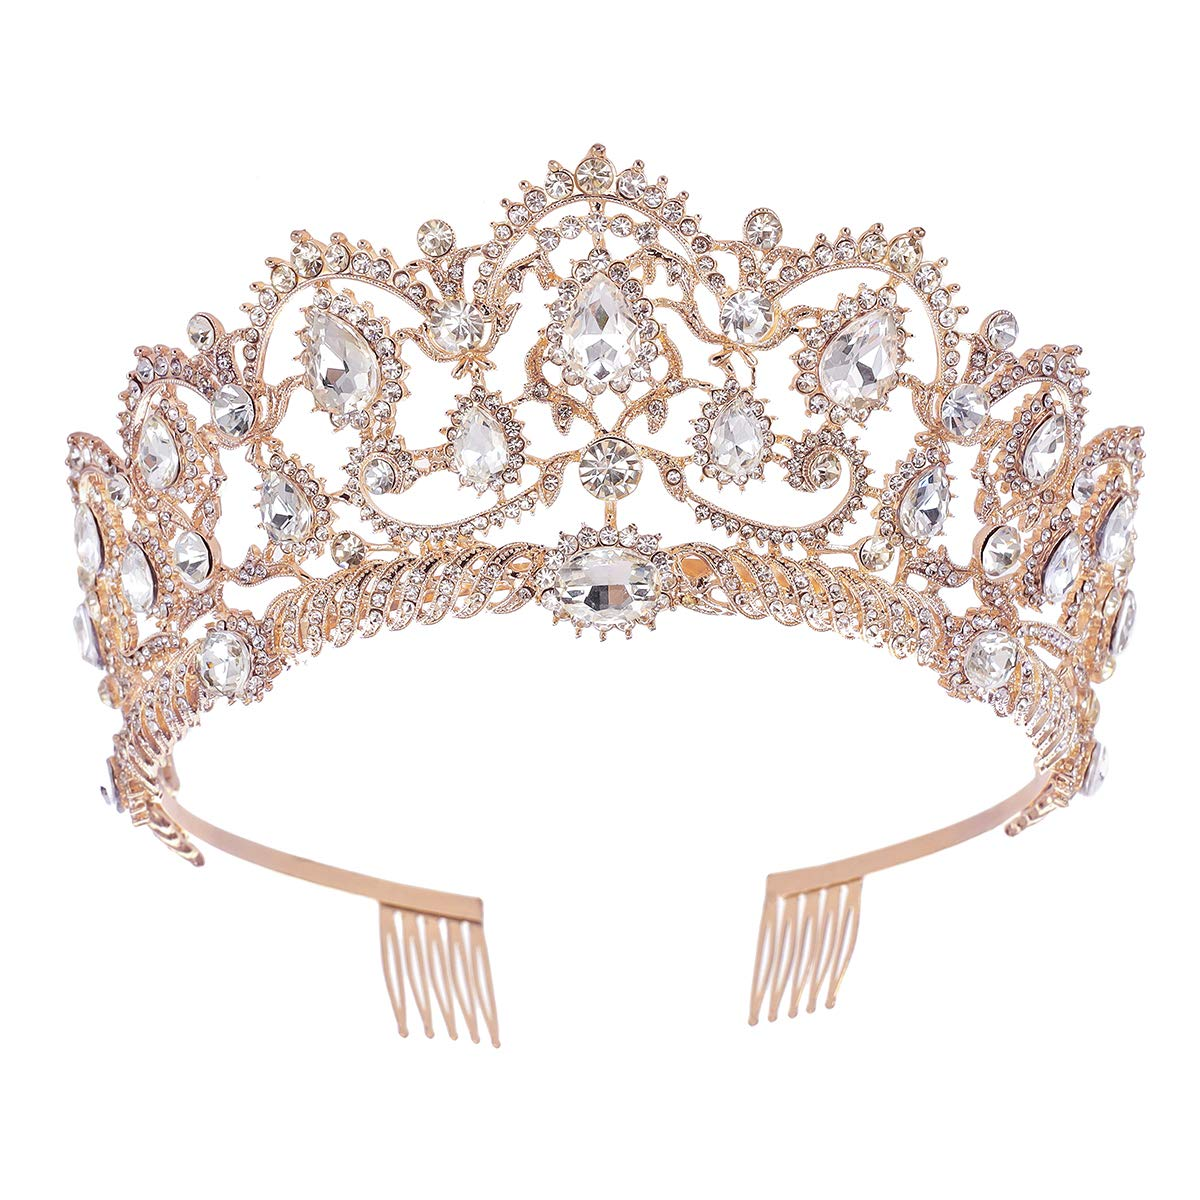 Jovono Wedding Crowns and Tiaras for Adults Bridal Gold Crown Tiara Crystal Hair